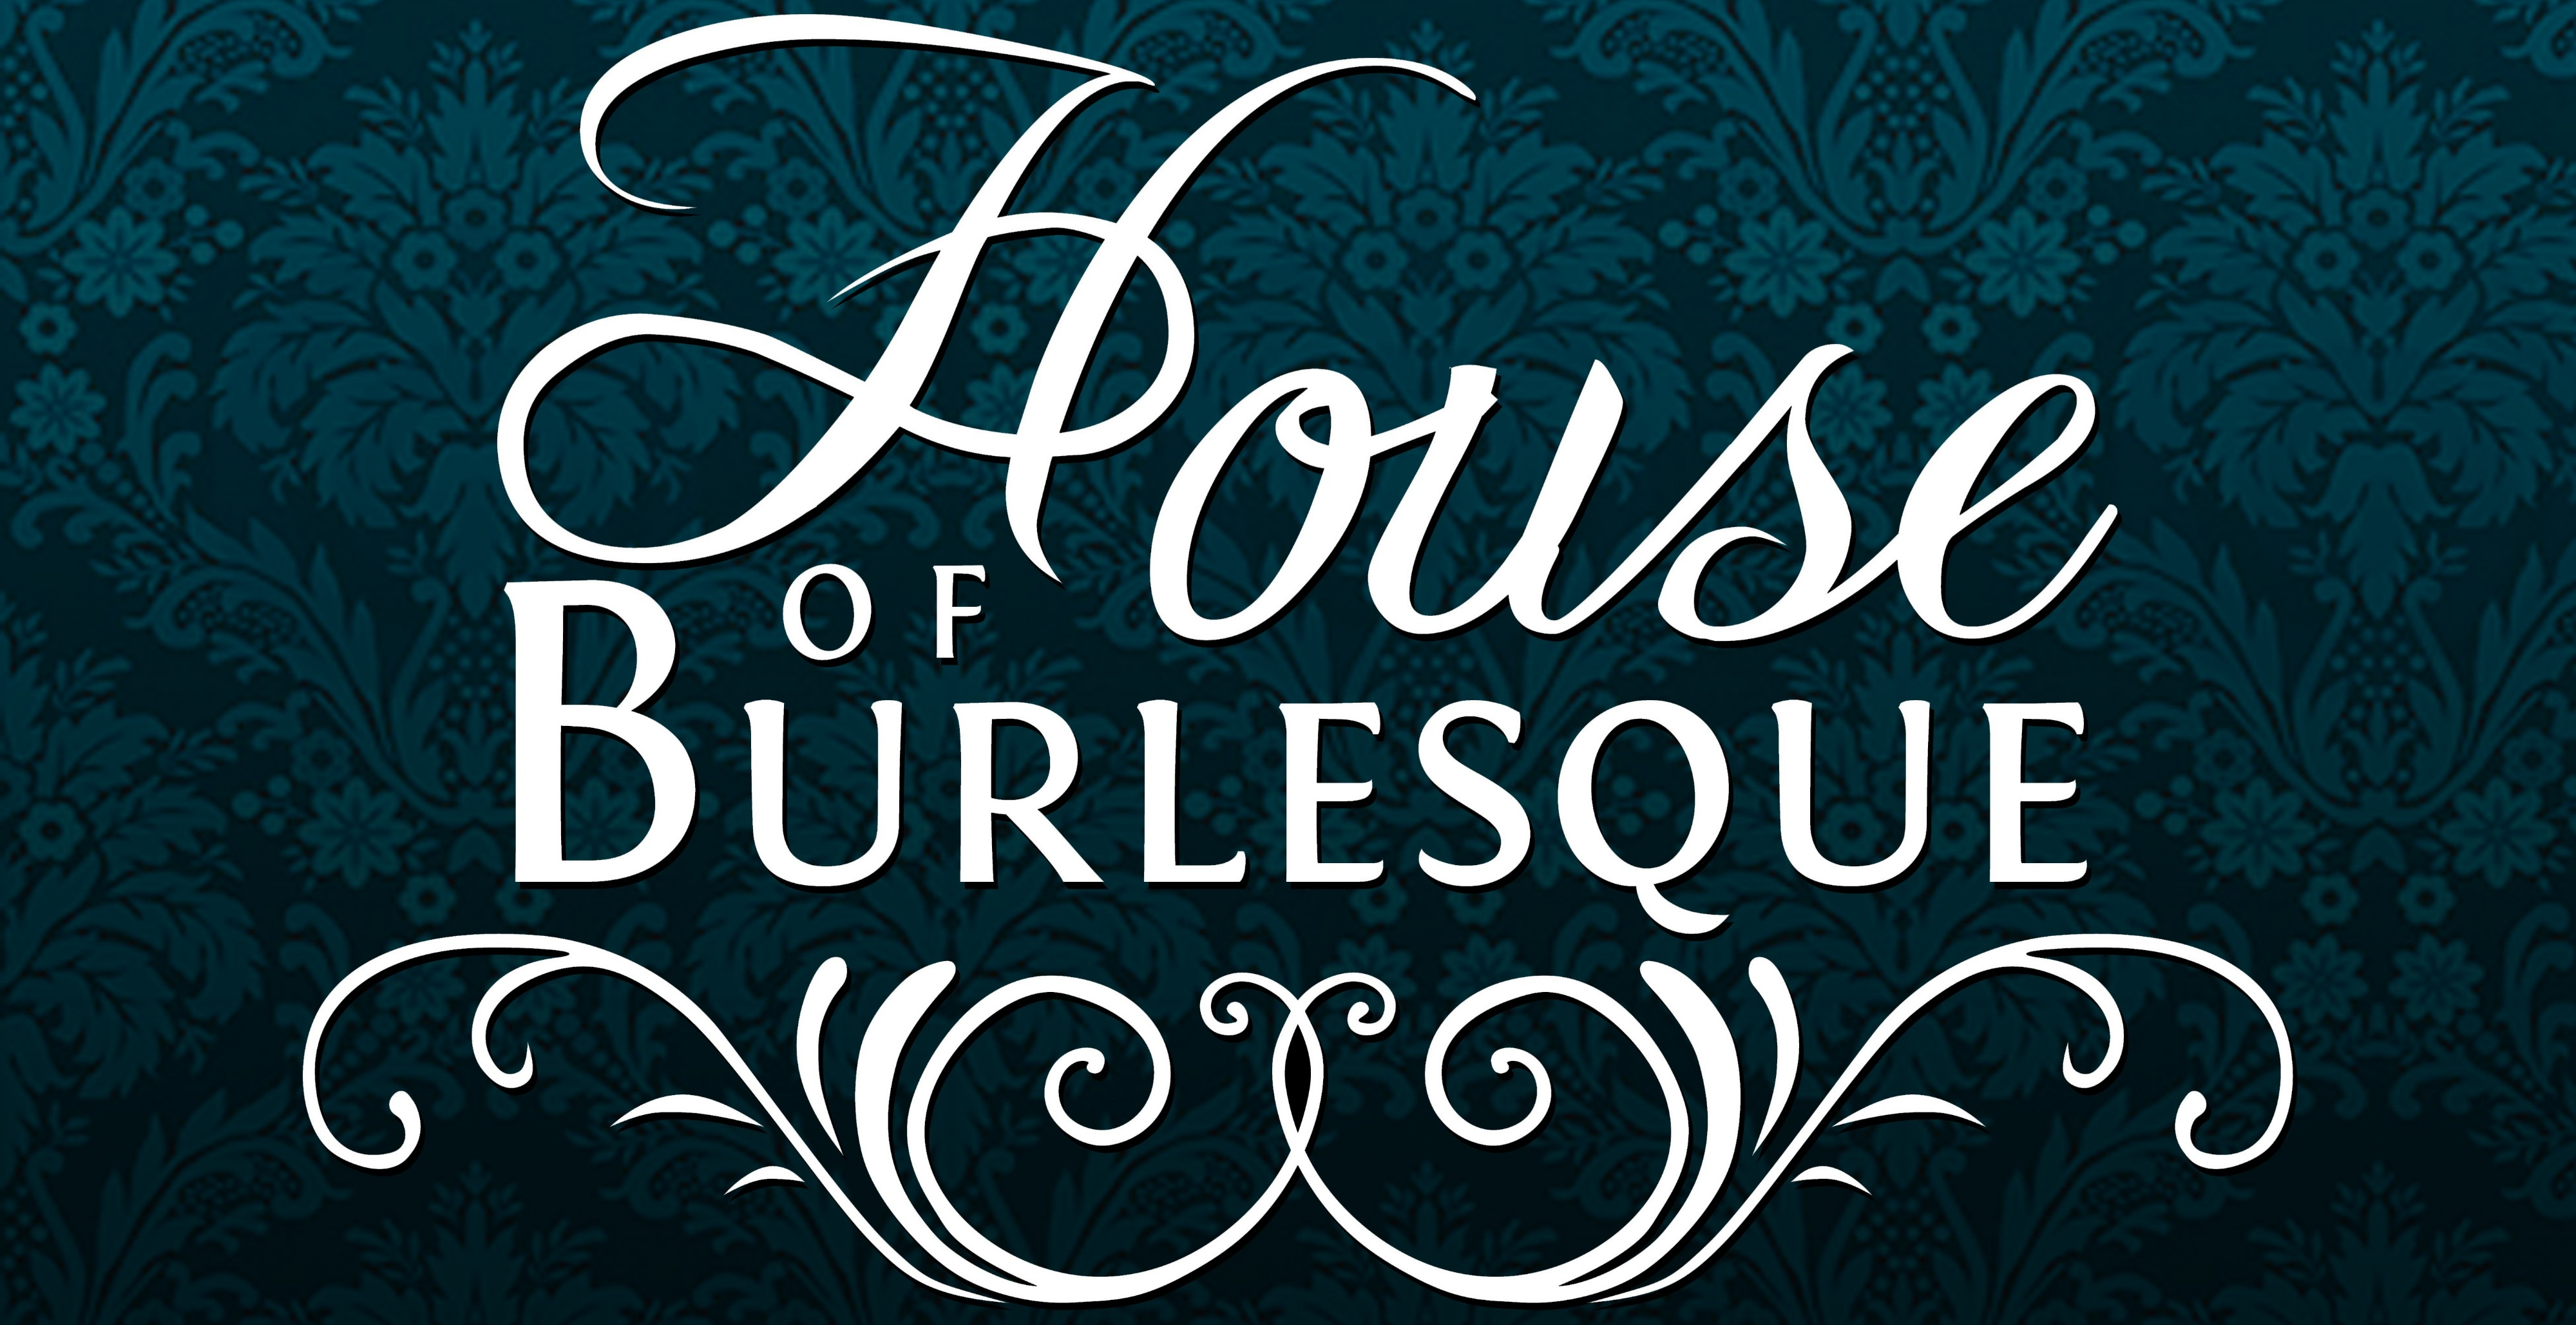 House of Burlesque Costuming Workshop and Shopping Tour